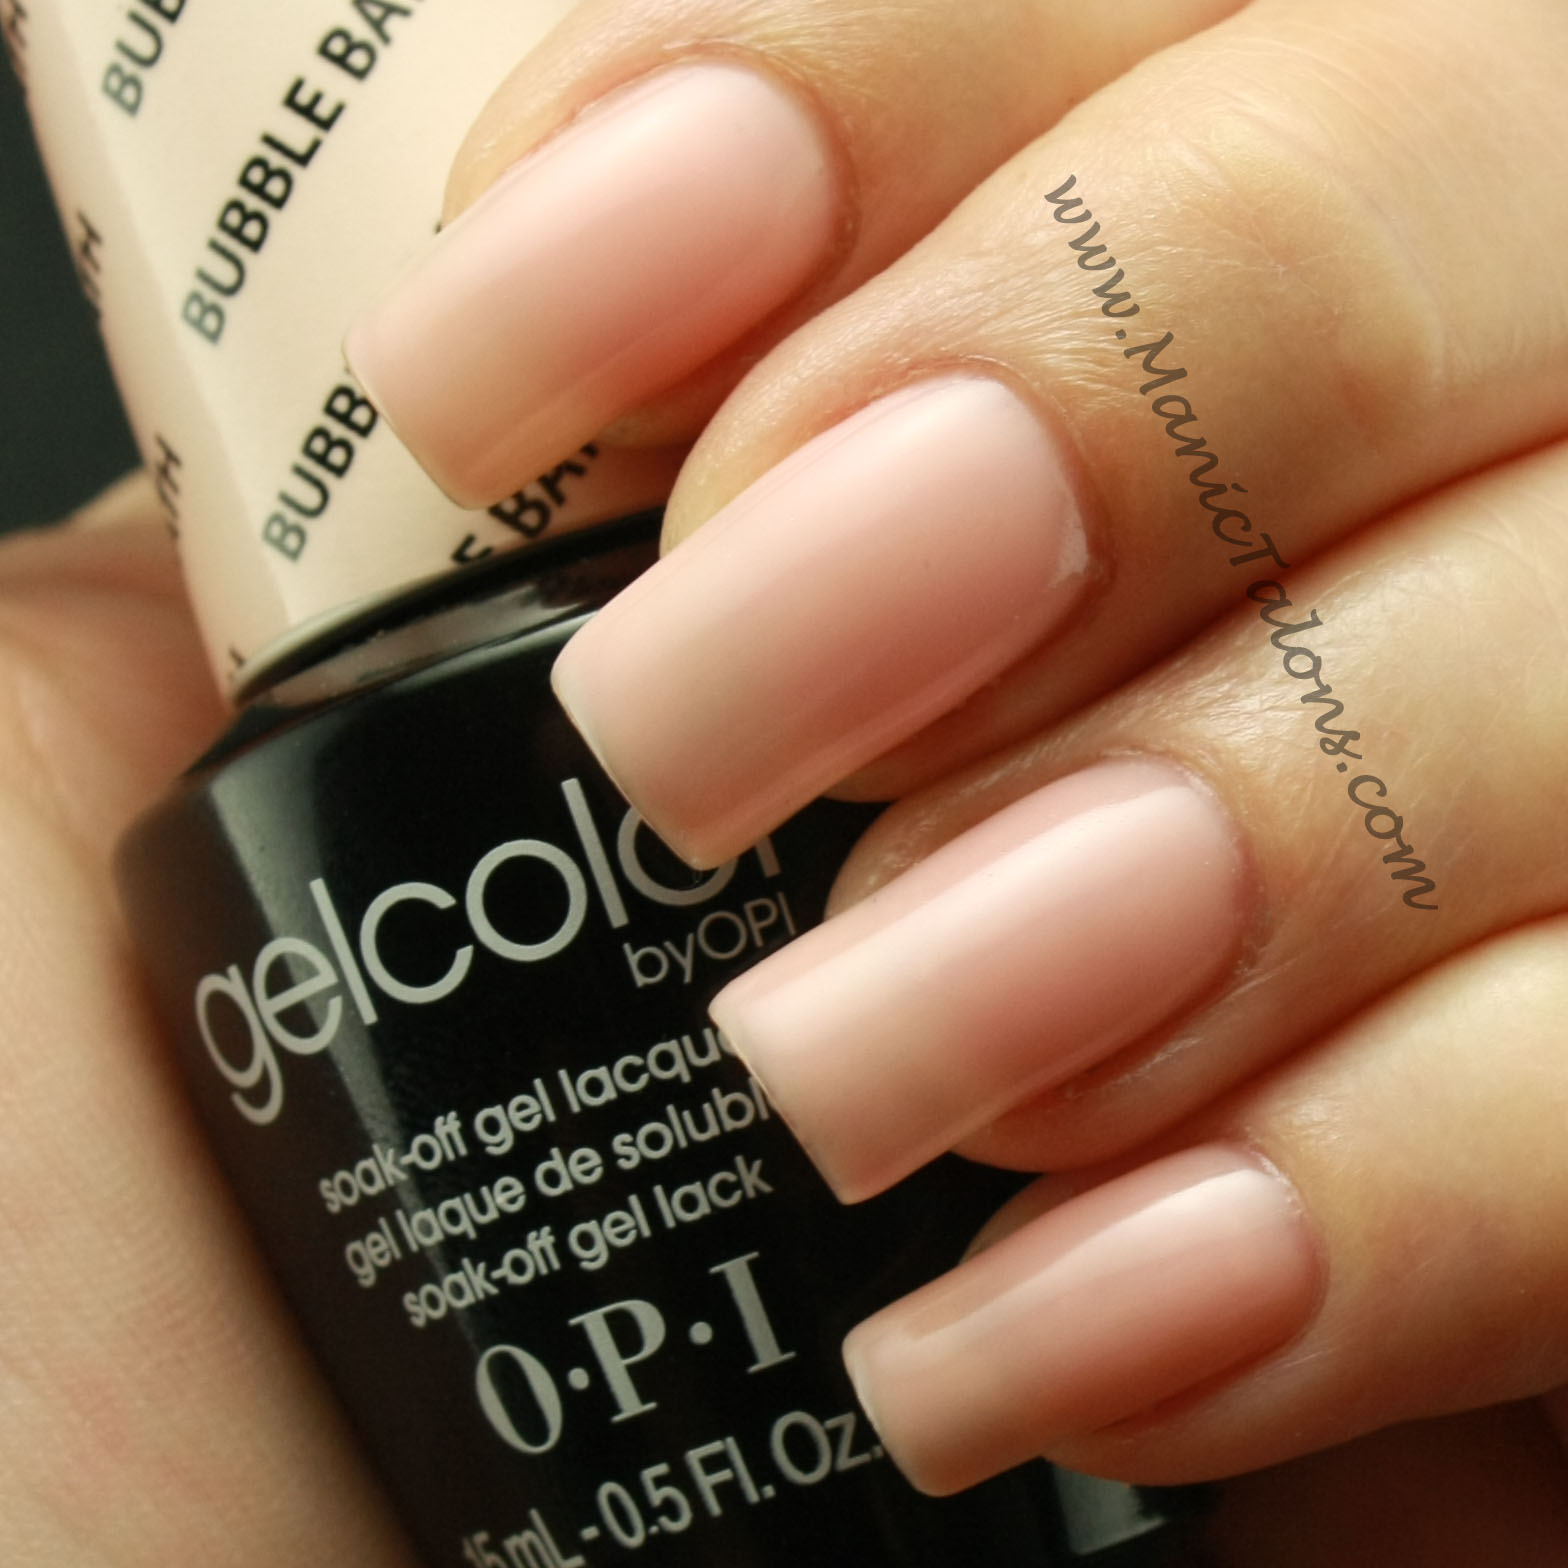 Opi Gelcolor Soak Off Gel